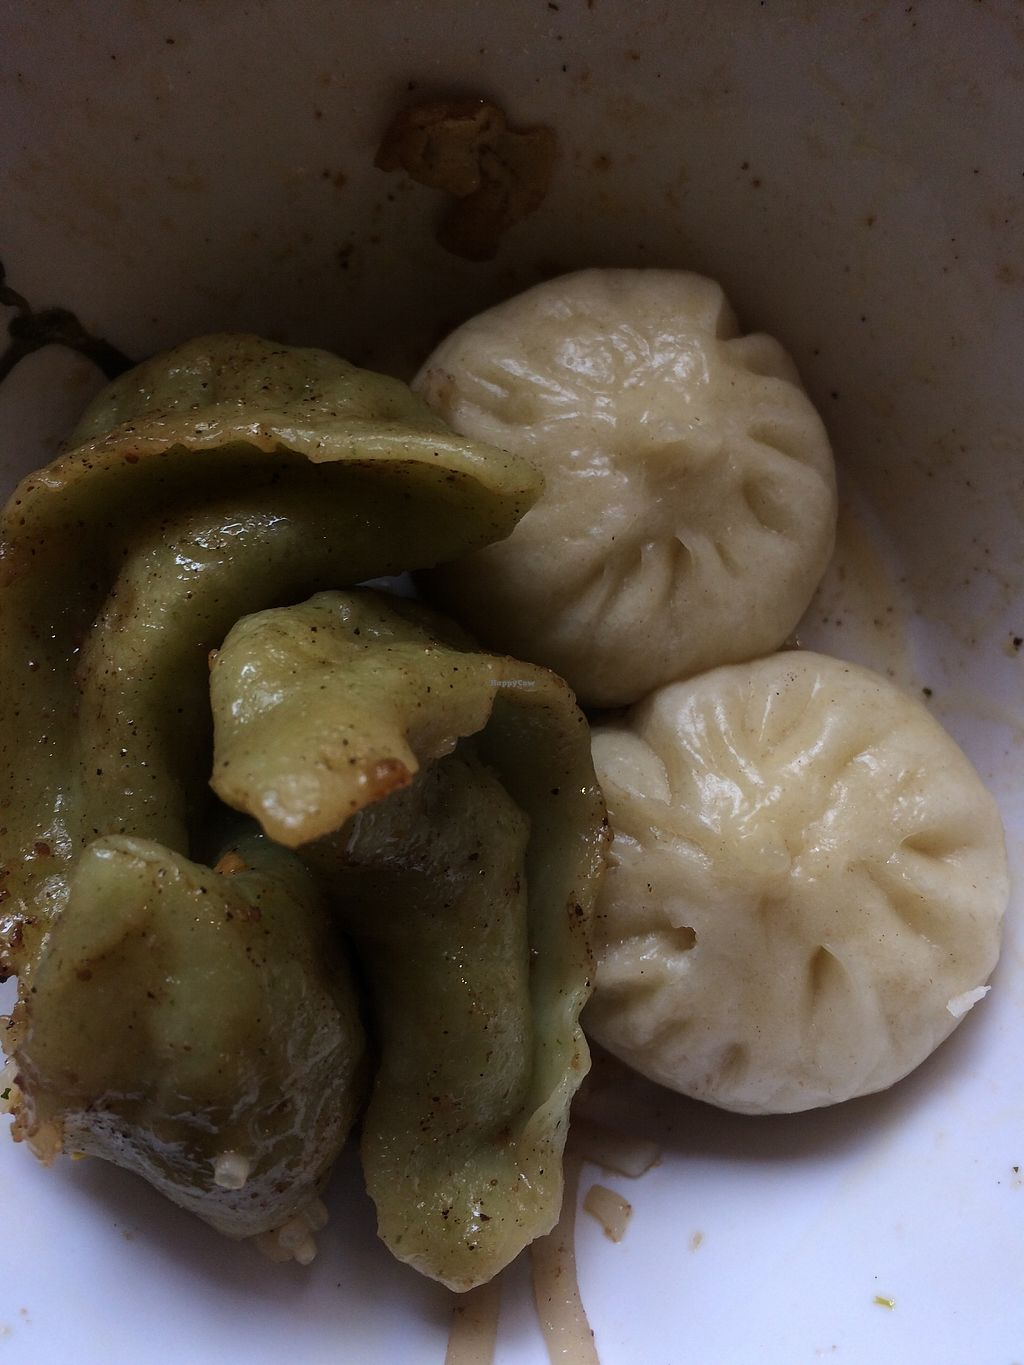 """Photo of Vegetasia  by <a href=""""/members/profile/AnetaB%C3%A1rtov%C3%A1"""">AnetaBártová</a> <br/>Delicious dumplings! <br/> December 31, 2017  - <a href='/contact/abuse/image/579/341288'>Report</a>"""